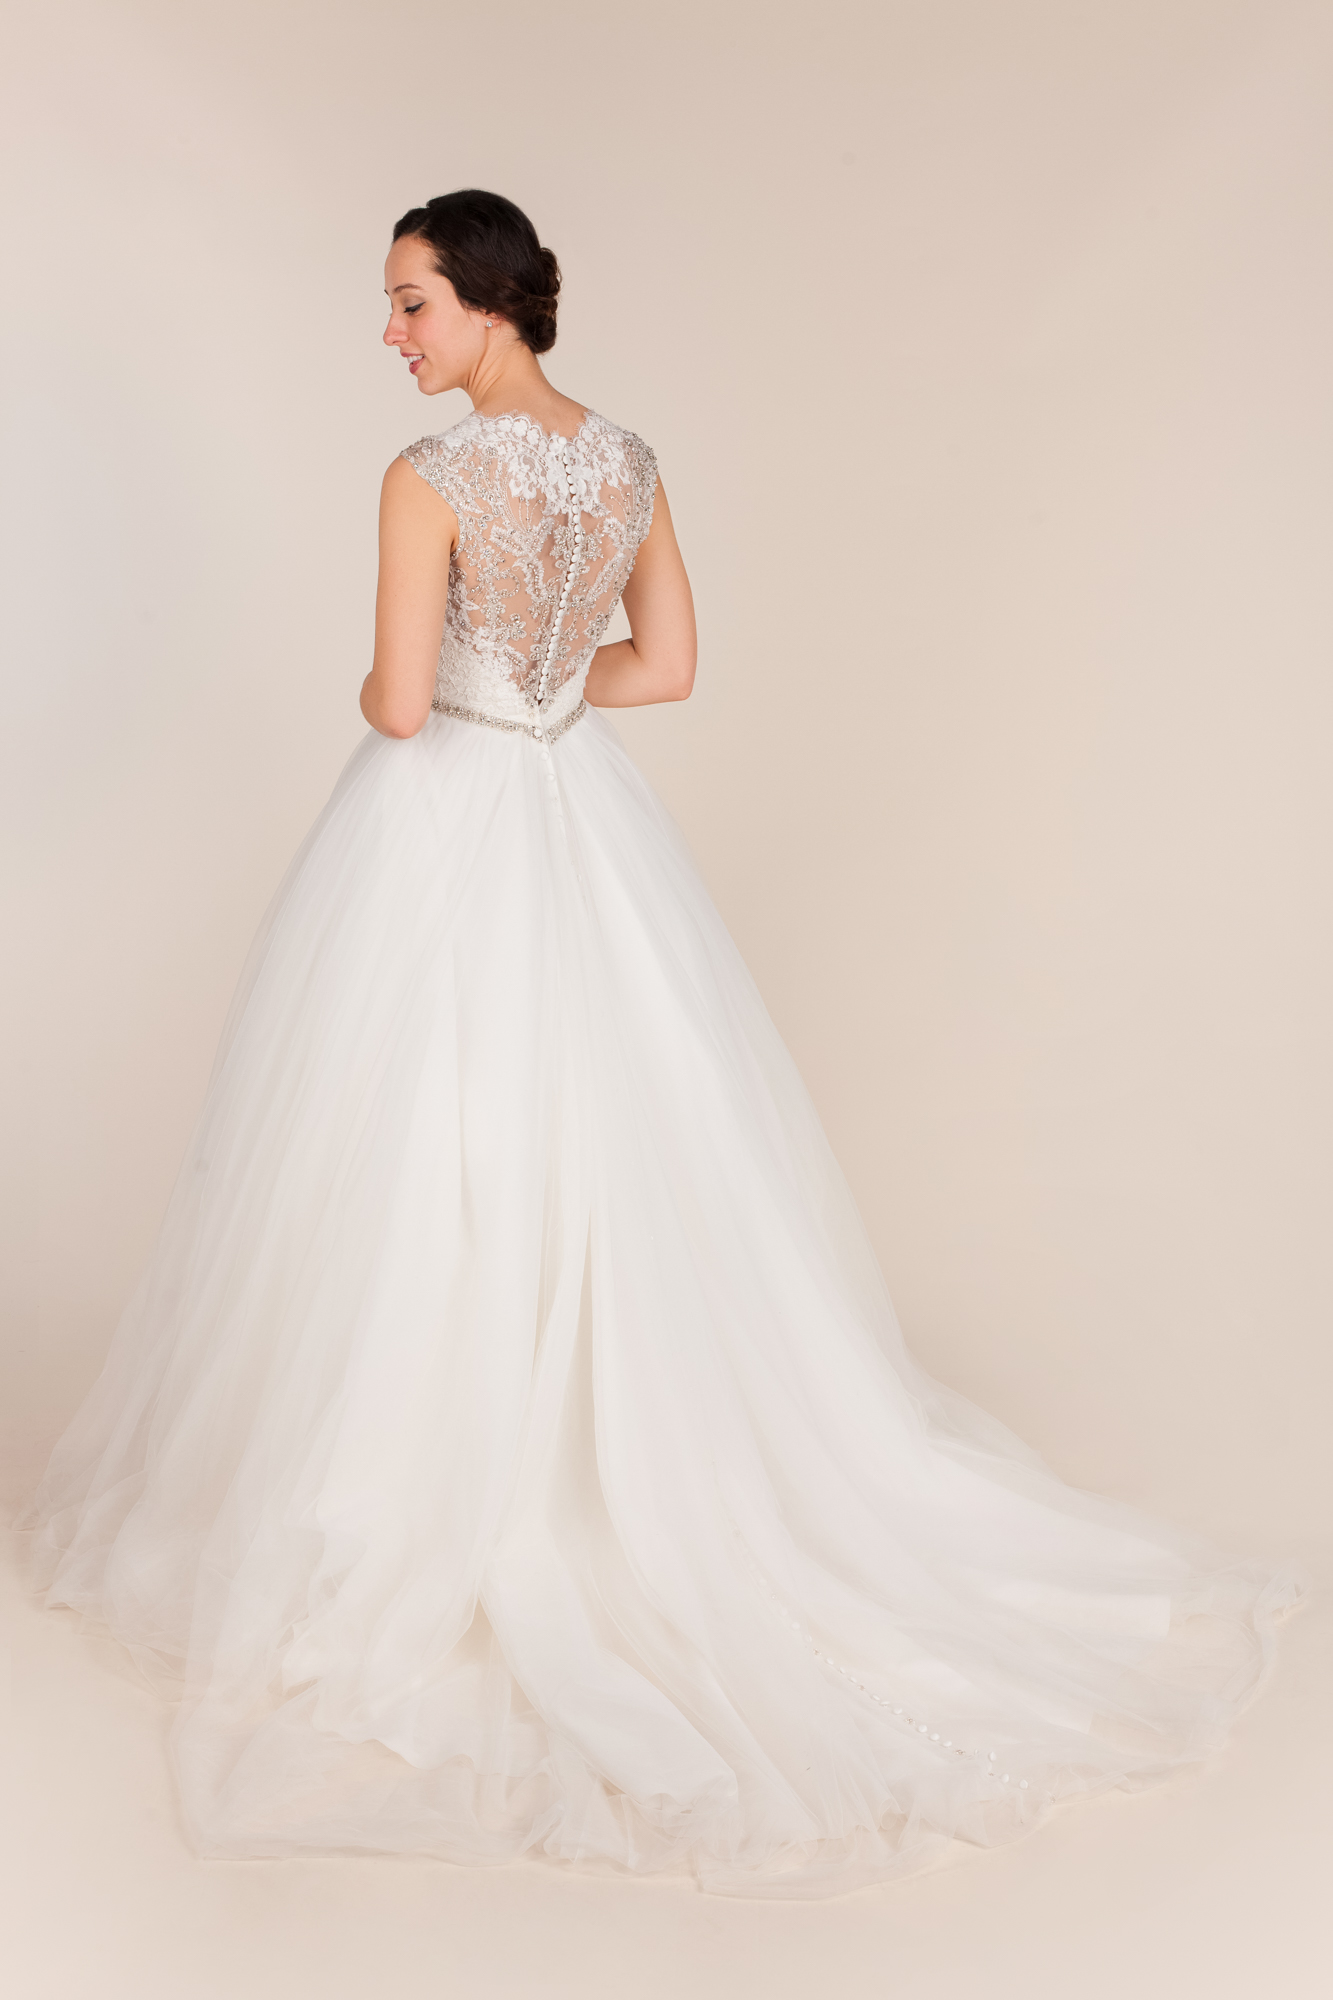 Allure bridals size 6 - $900 - (55% OFF)